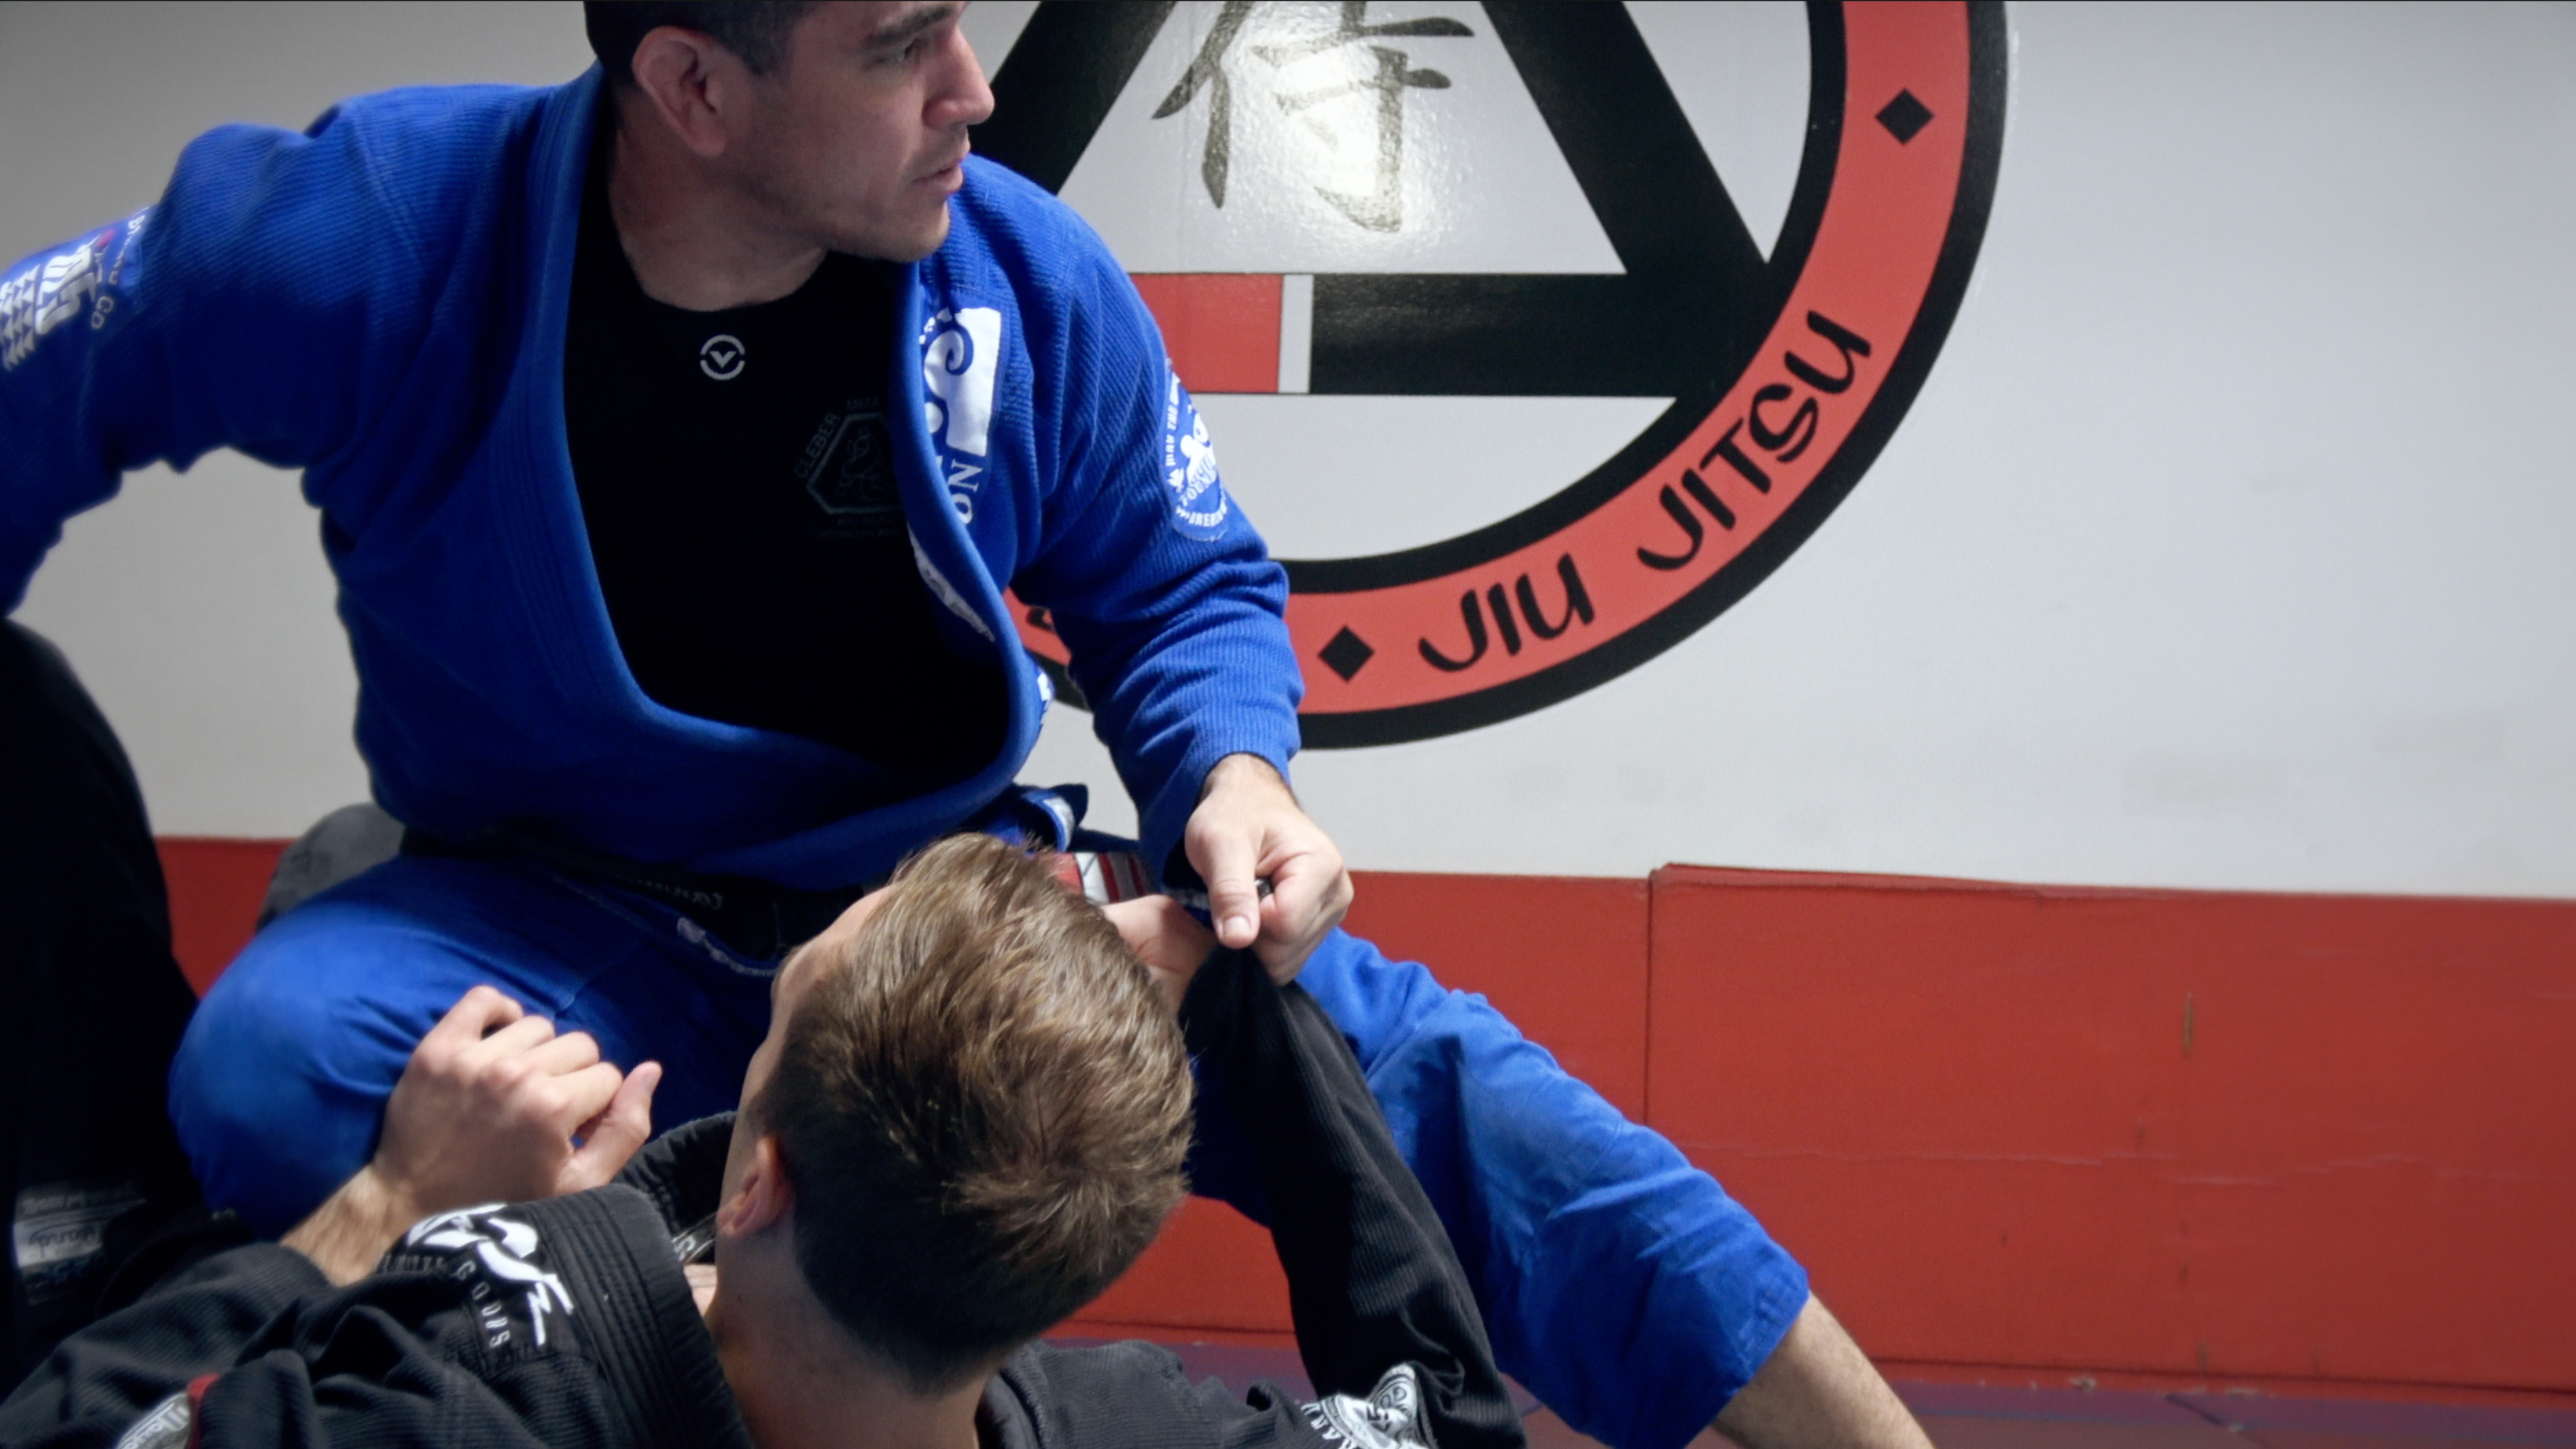 Travels: BJJ Seminars Around the World